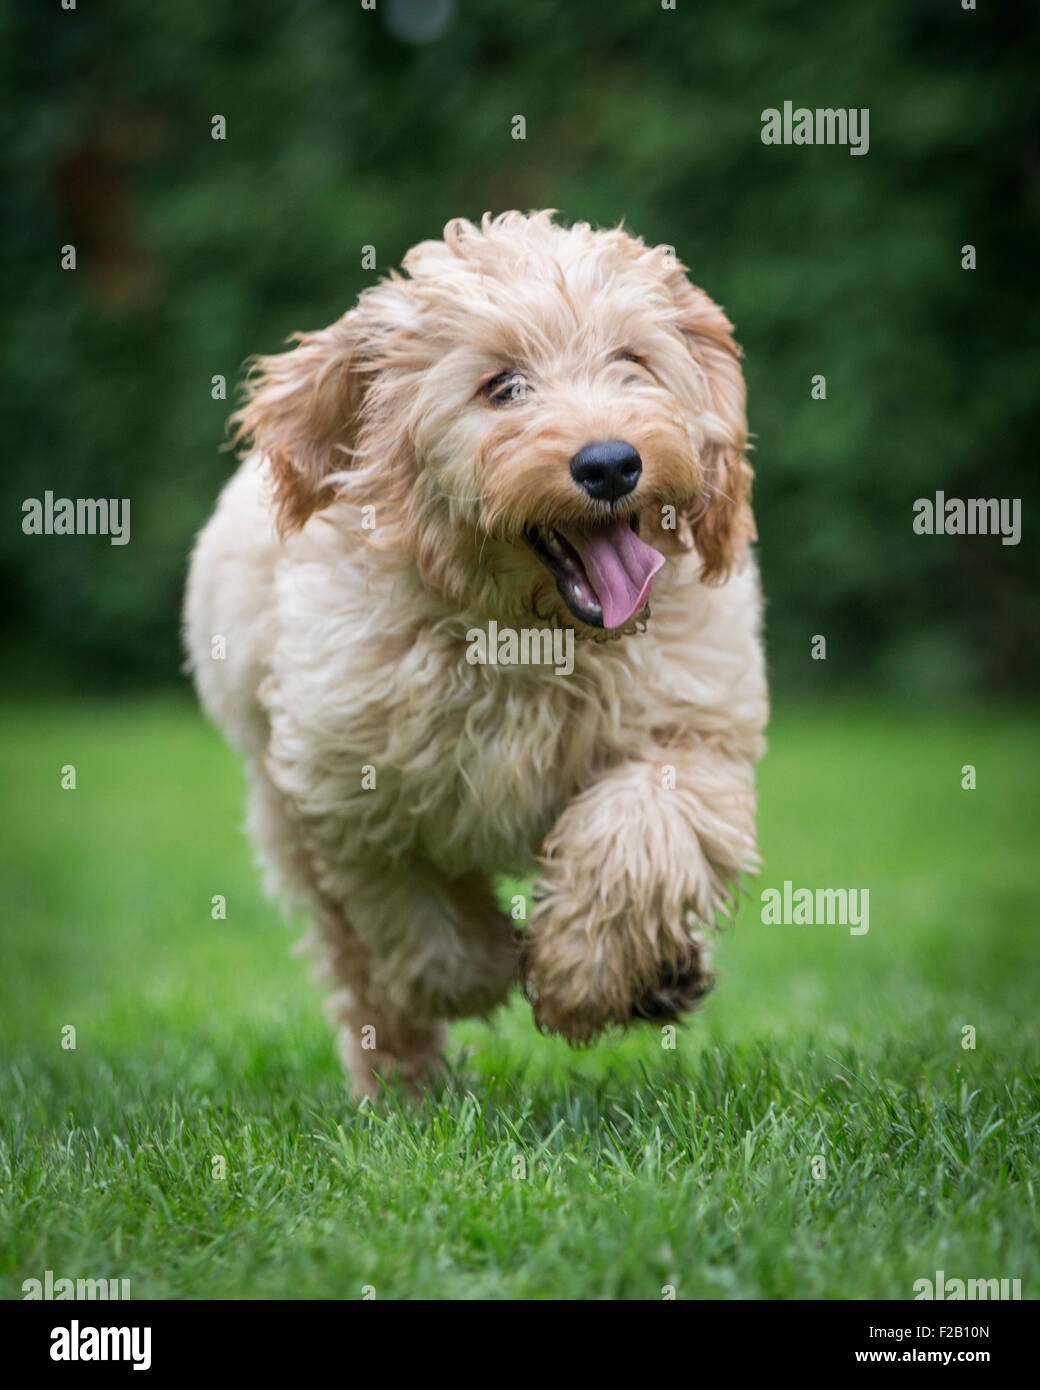 Four month old Cockapoo puppy running in garden Stock Photo